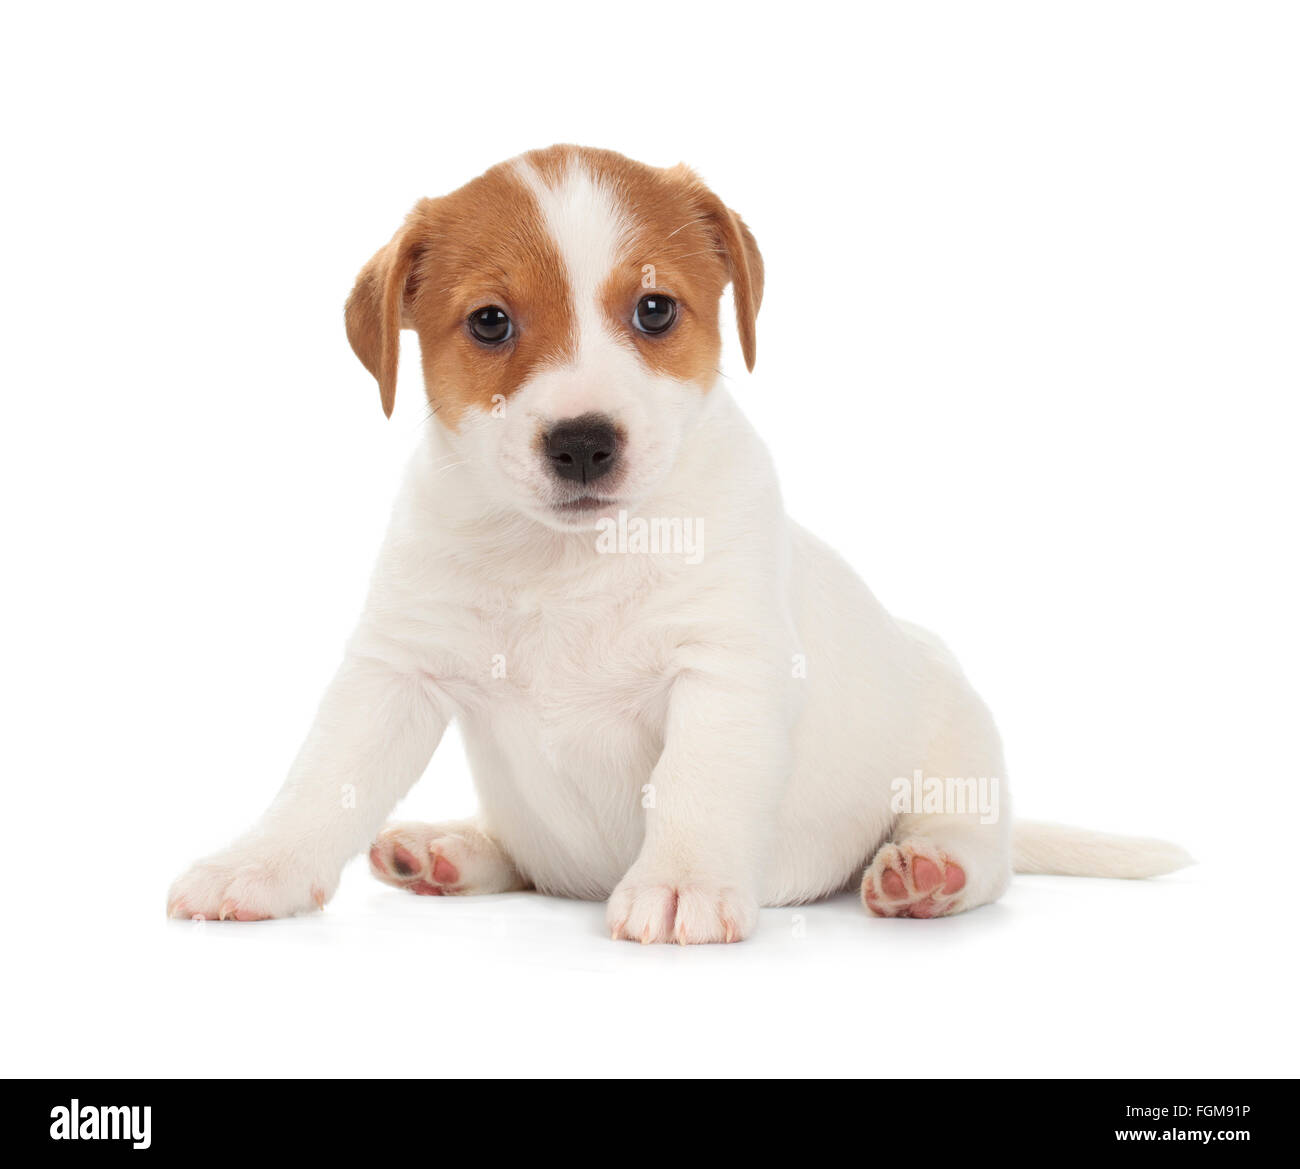 Jack Russell Terrier puppy isolated on white background. Front view, sitting. - Stock Image